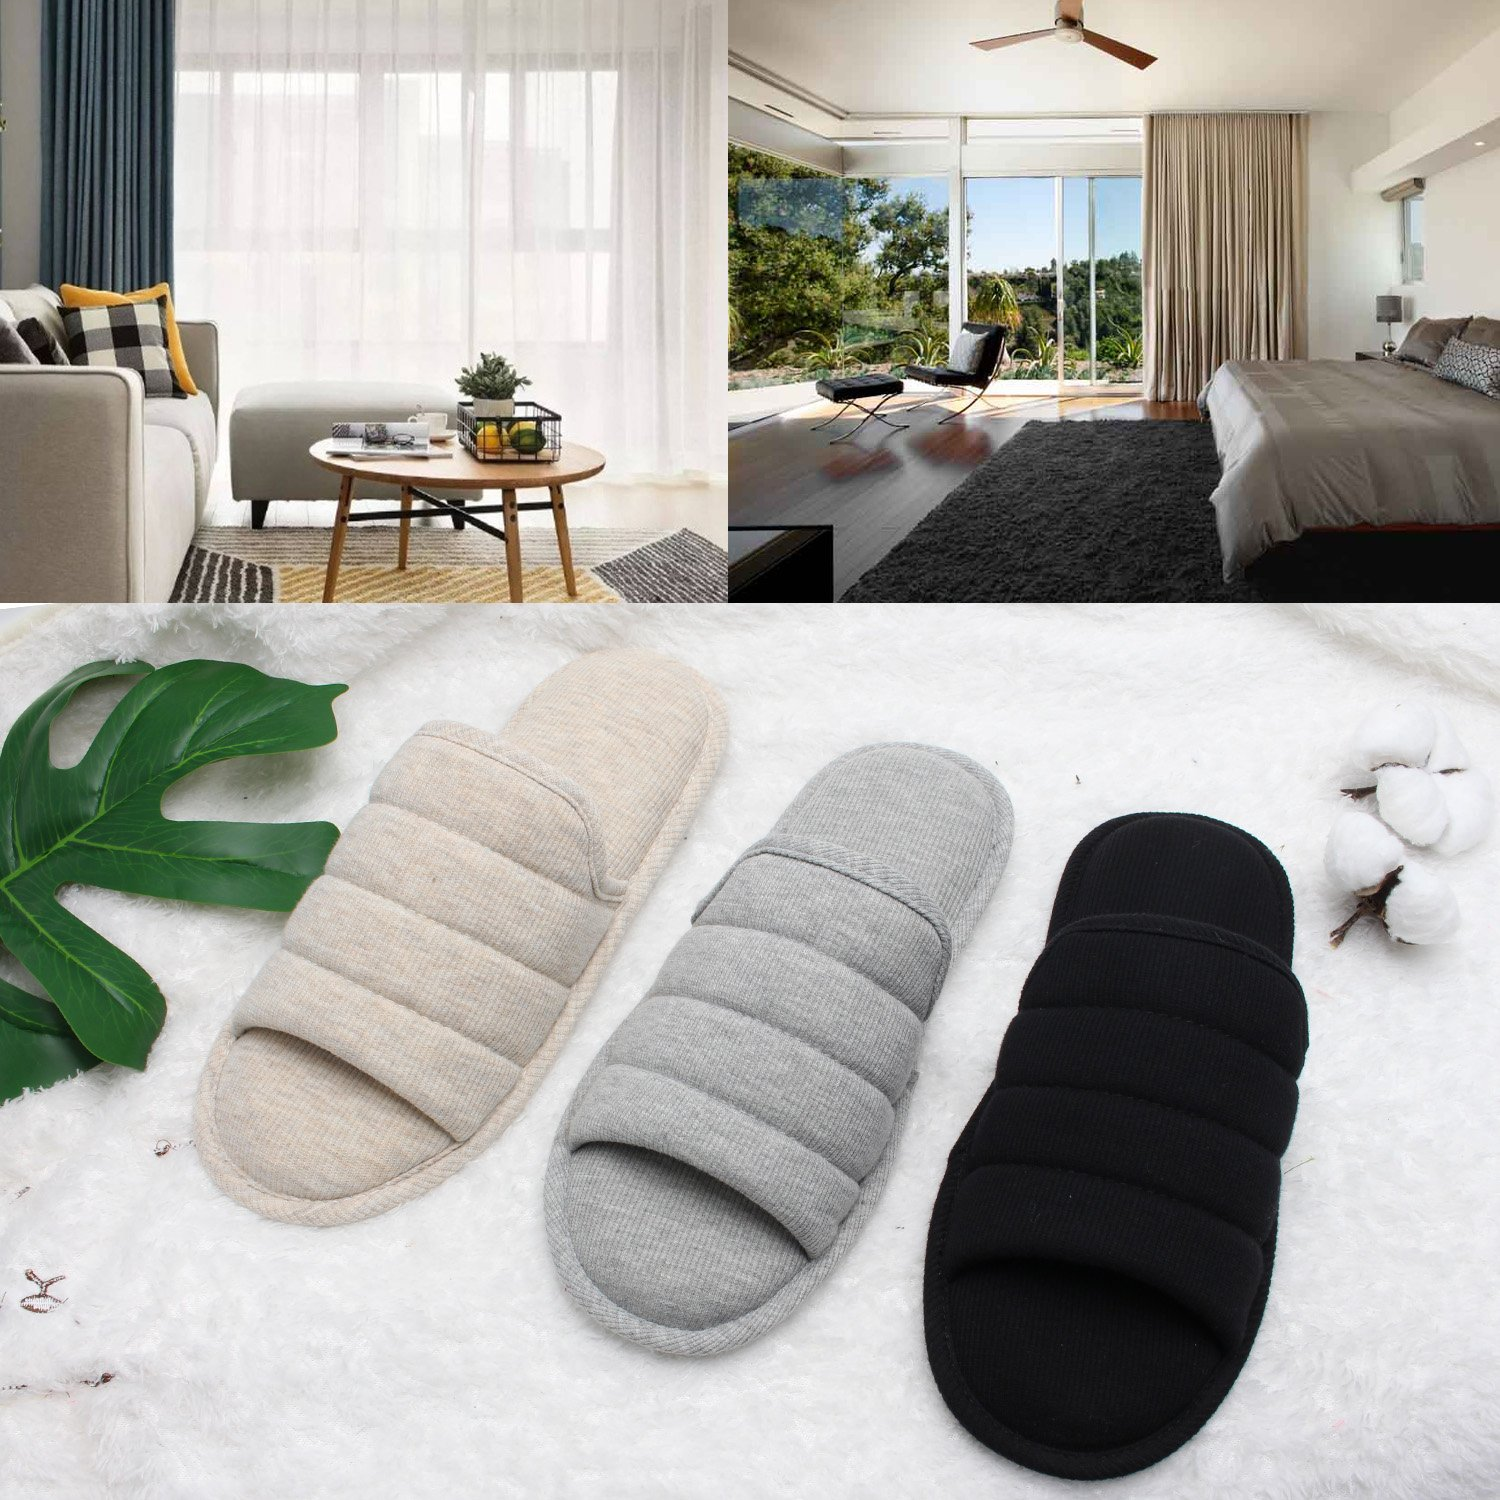 Ofoot Men's Cozy Thread Cloth Open Toe House Slippers, Indoor / Outdoor Slip on Shoes by Ofoot (Image #6)